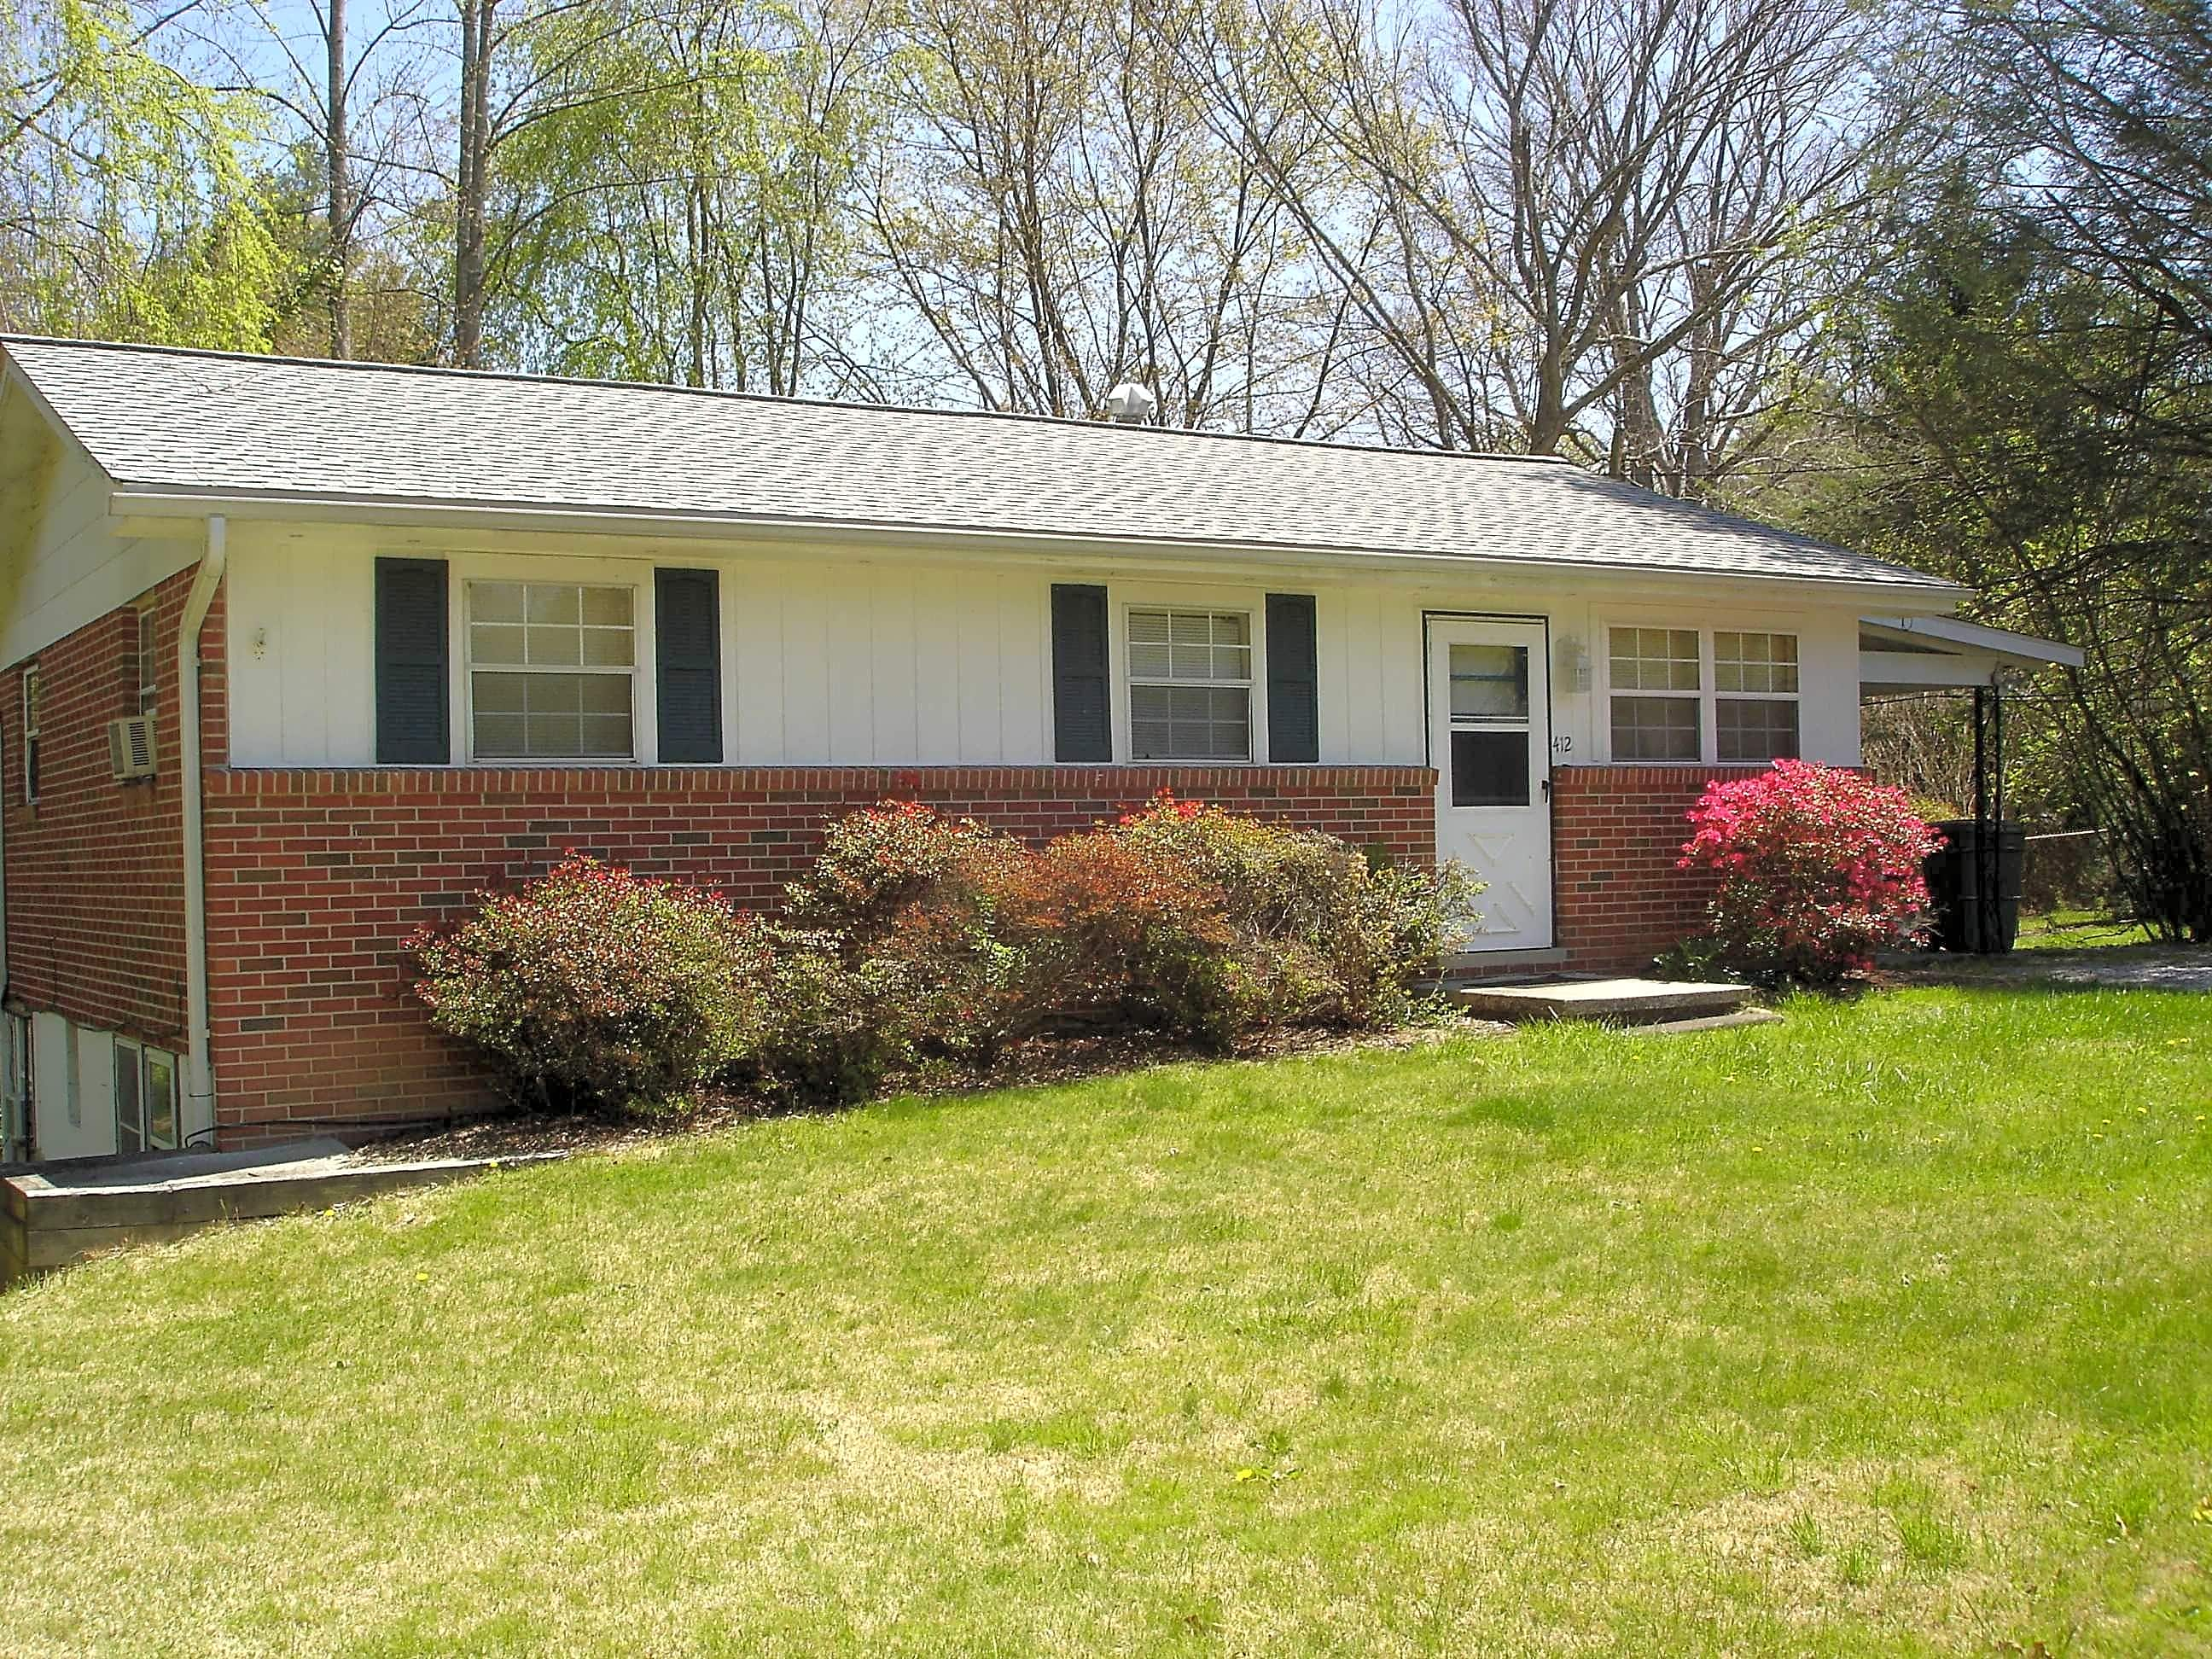 Duplex, Triplex, Quadplex for Rent in Hendersonville